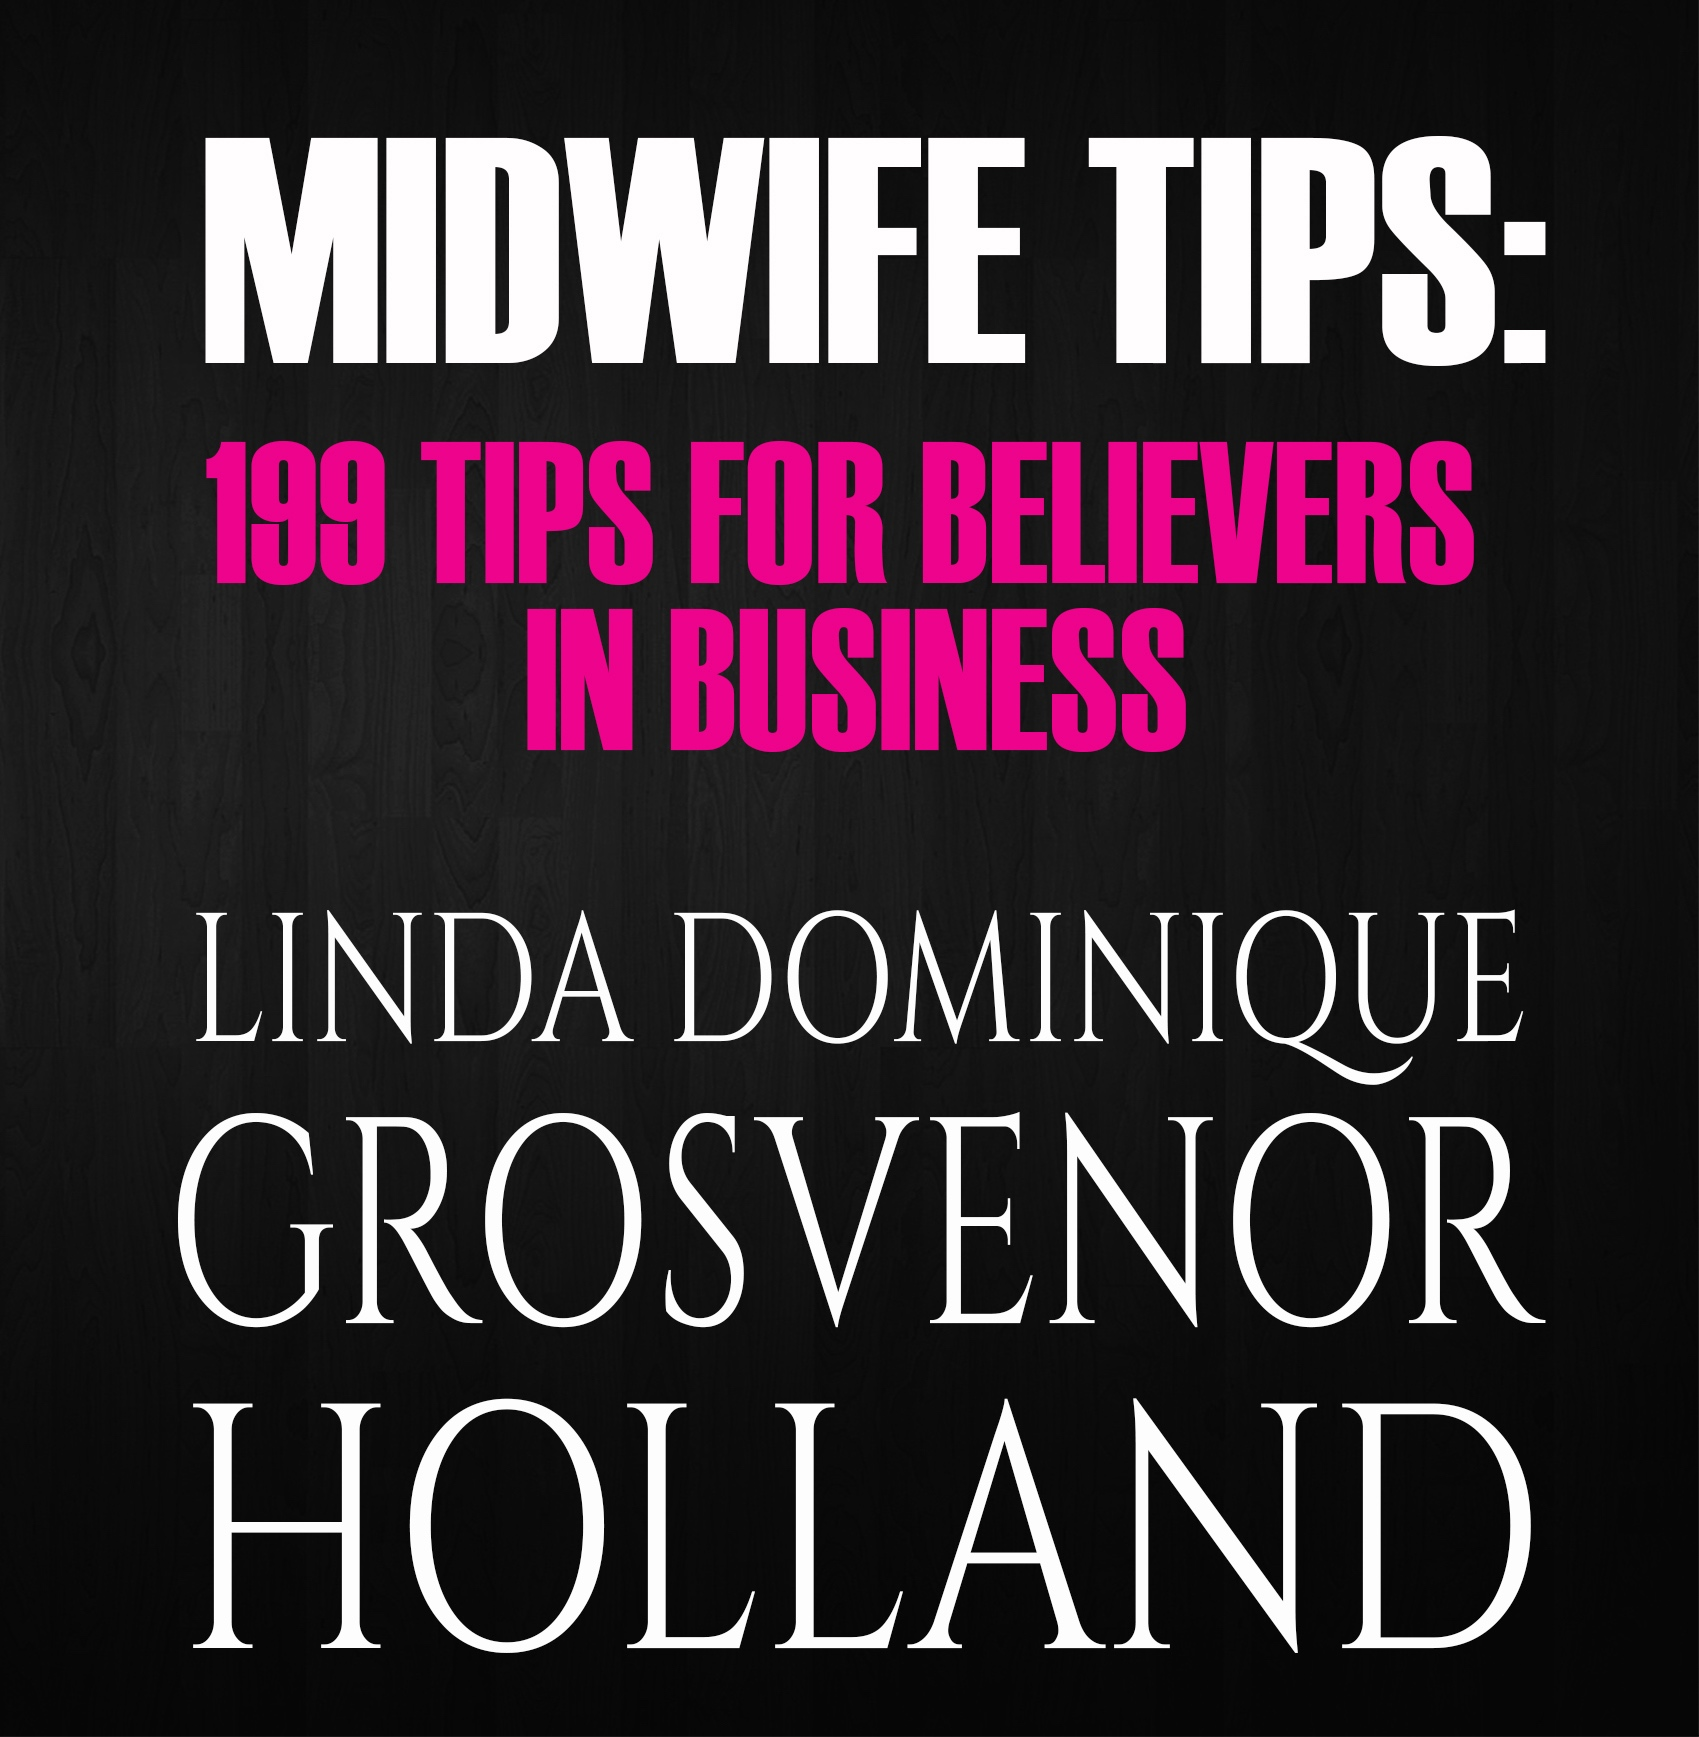 Midwife Tips Book